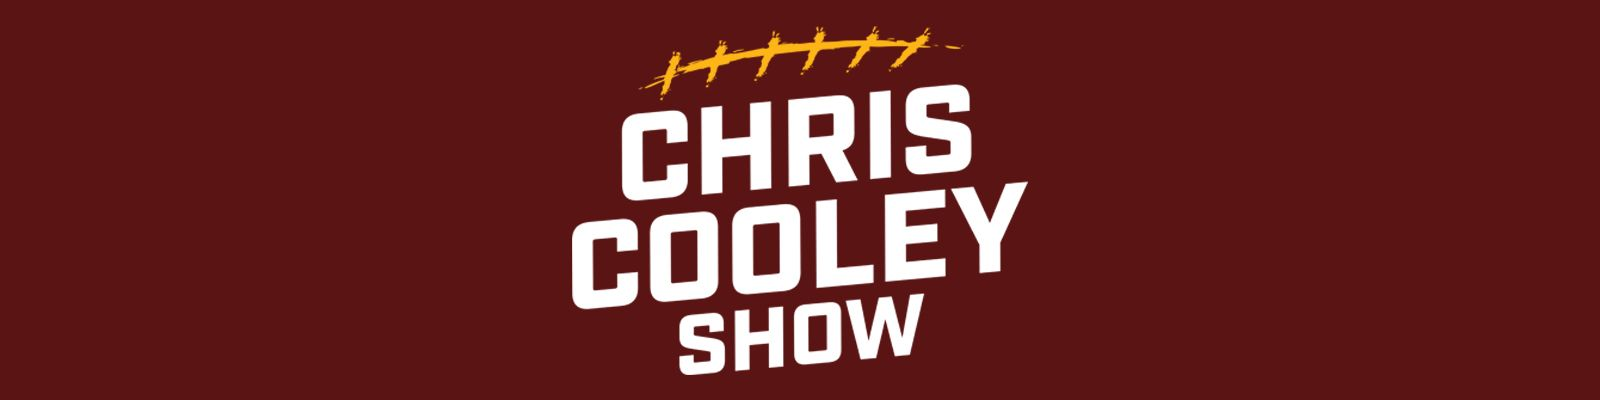 cooley-show-podcast-header-1600x400